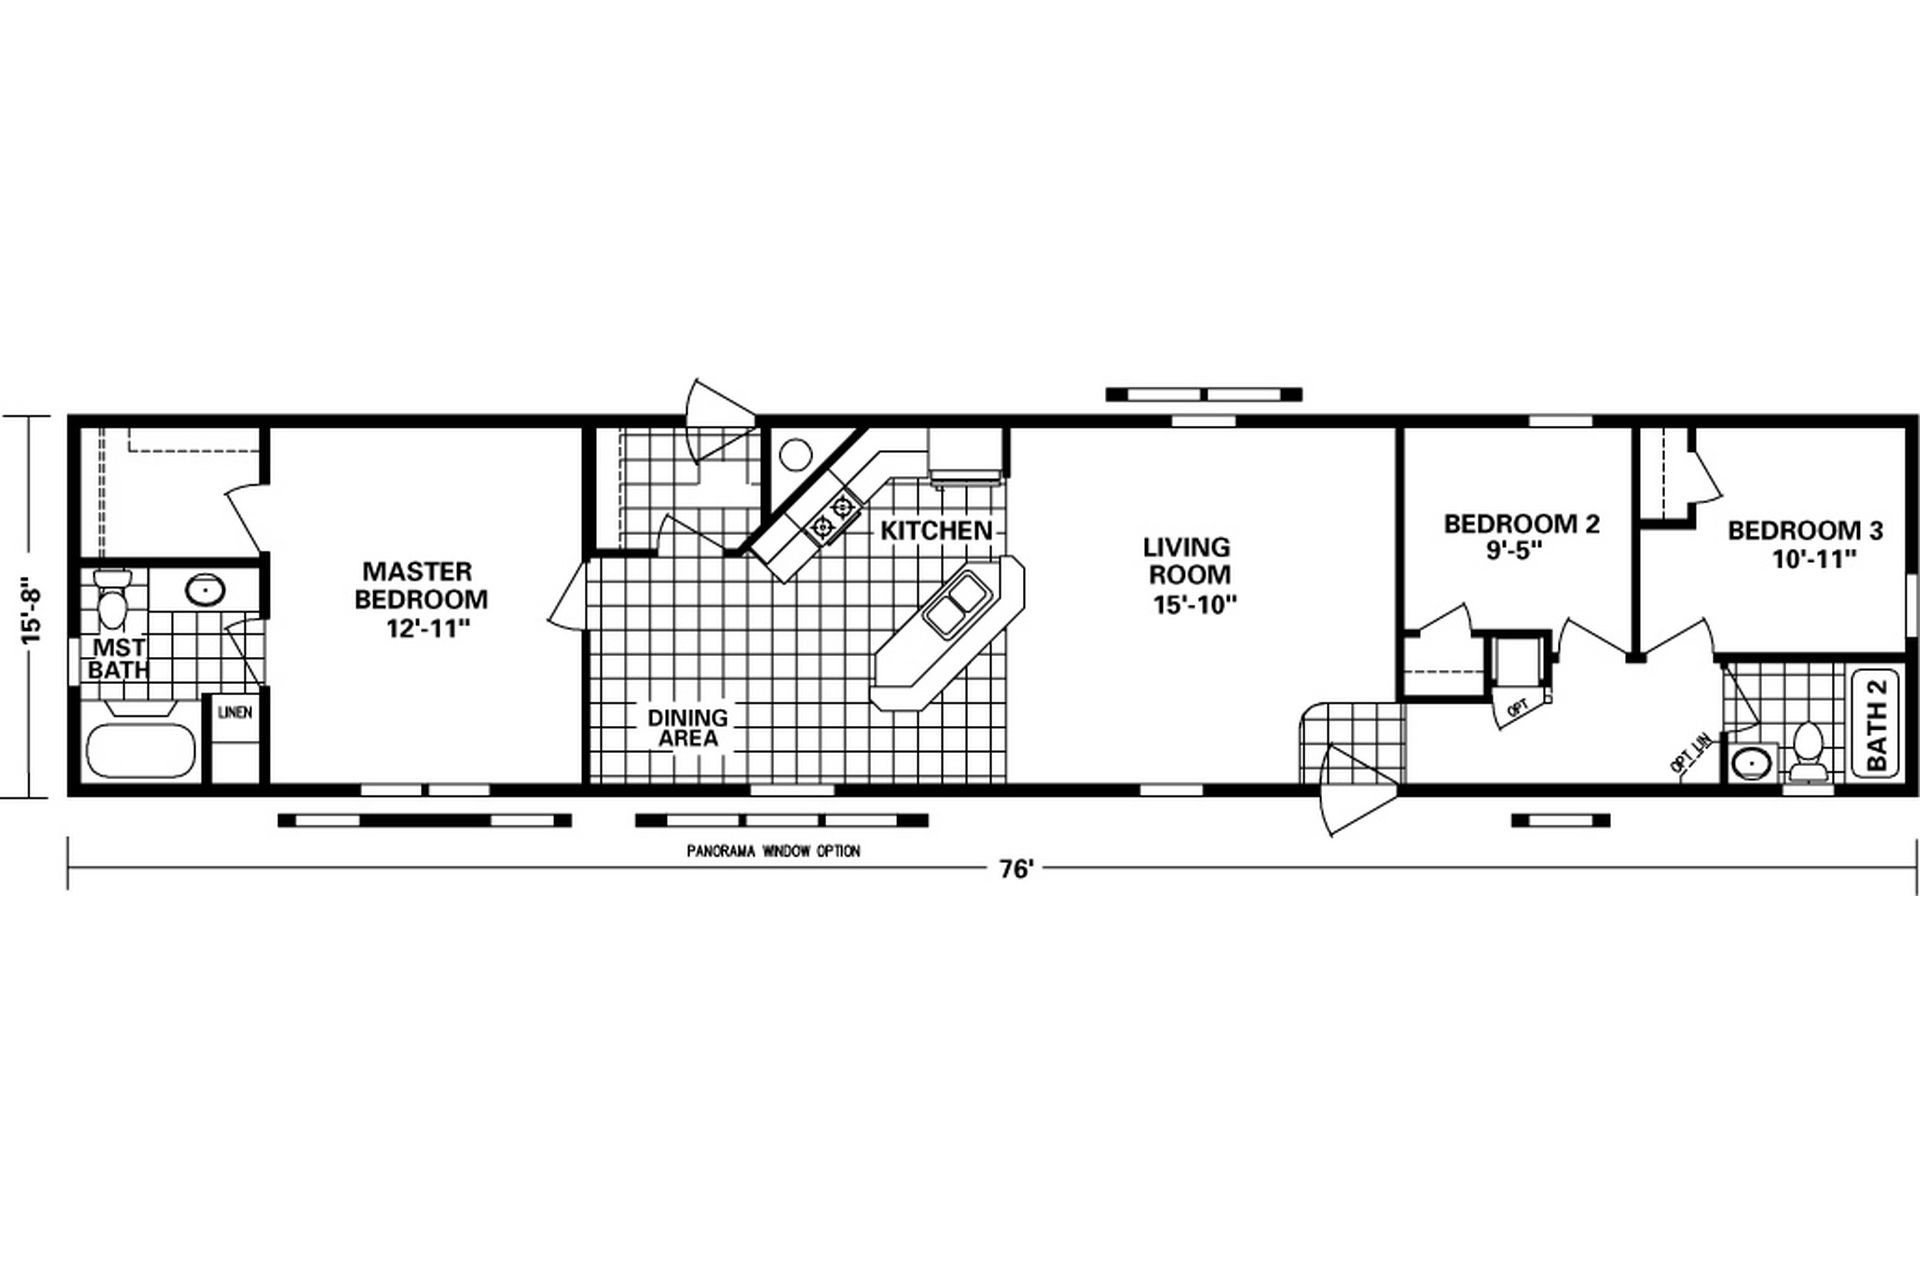 16 X 80 Mobile Home Floor Plans | Floor Plans in 2019 | Mobile home  Chandaluer Bdrm Bath Double Wide Mobile Home on